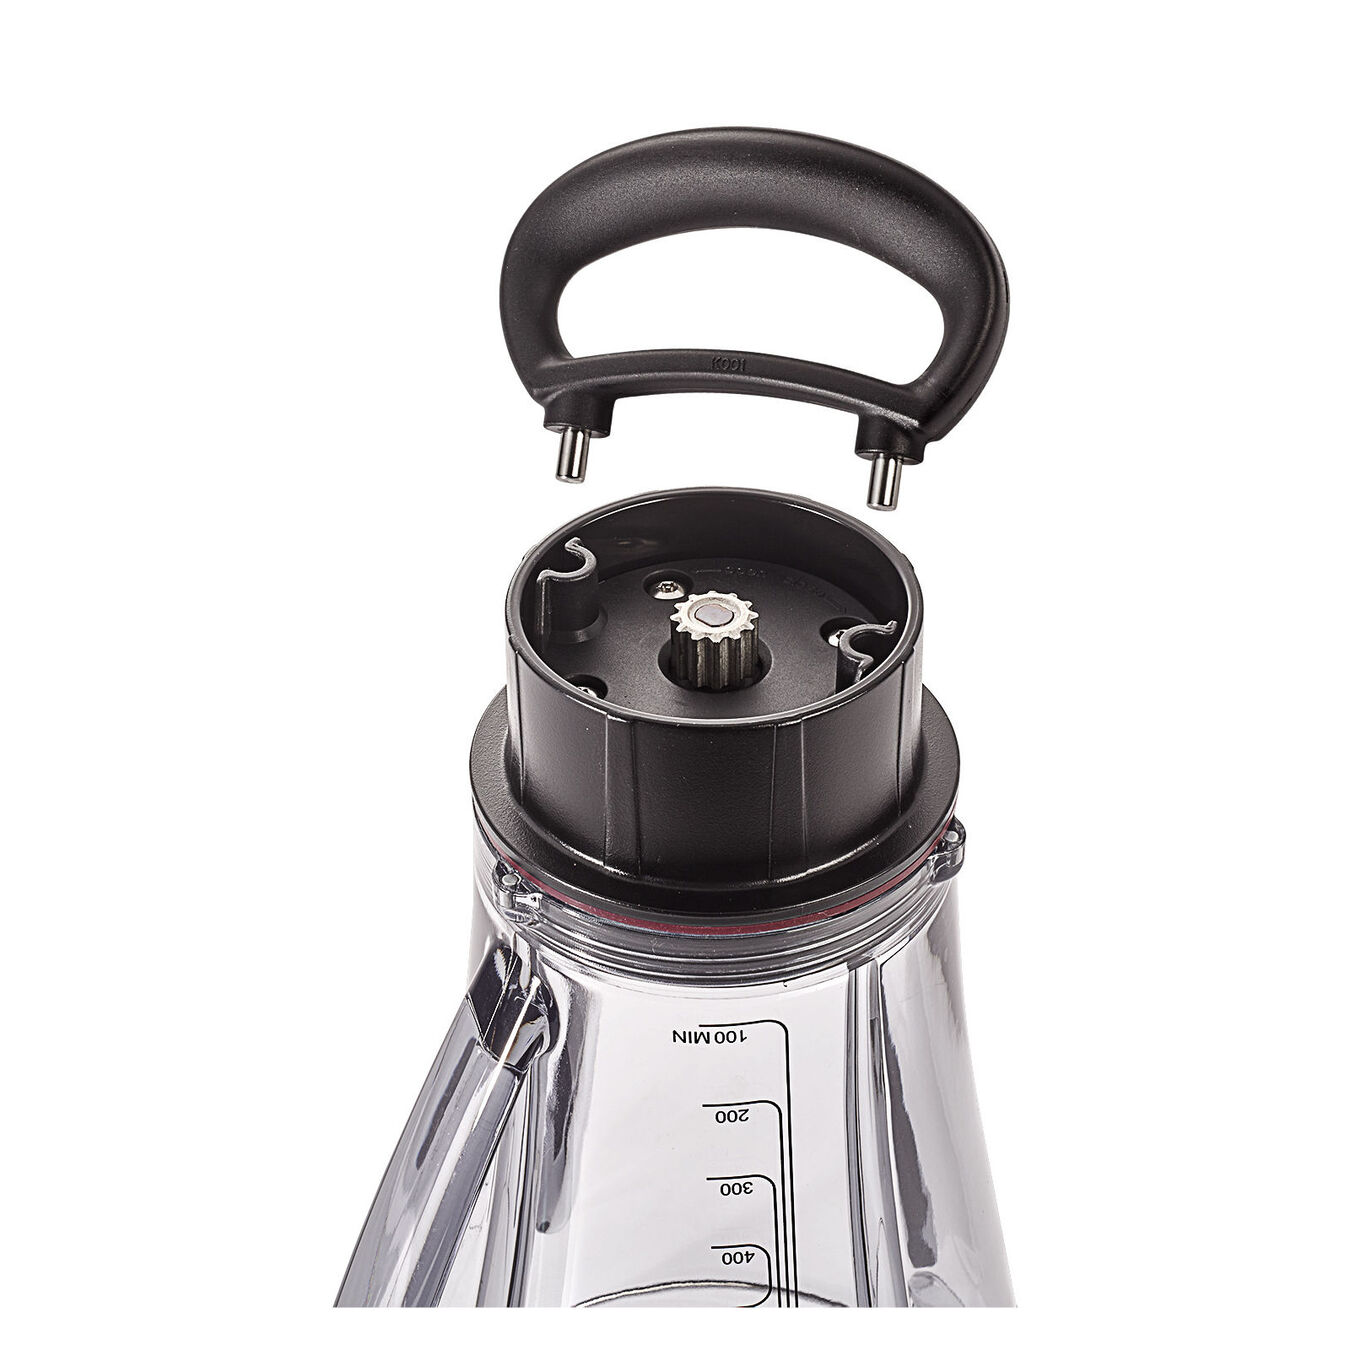 Countertop Blender - Cherry Red,,large 17